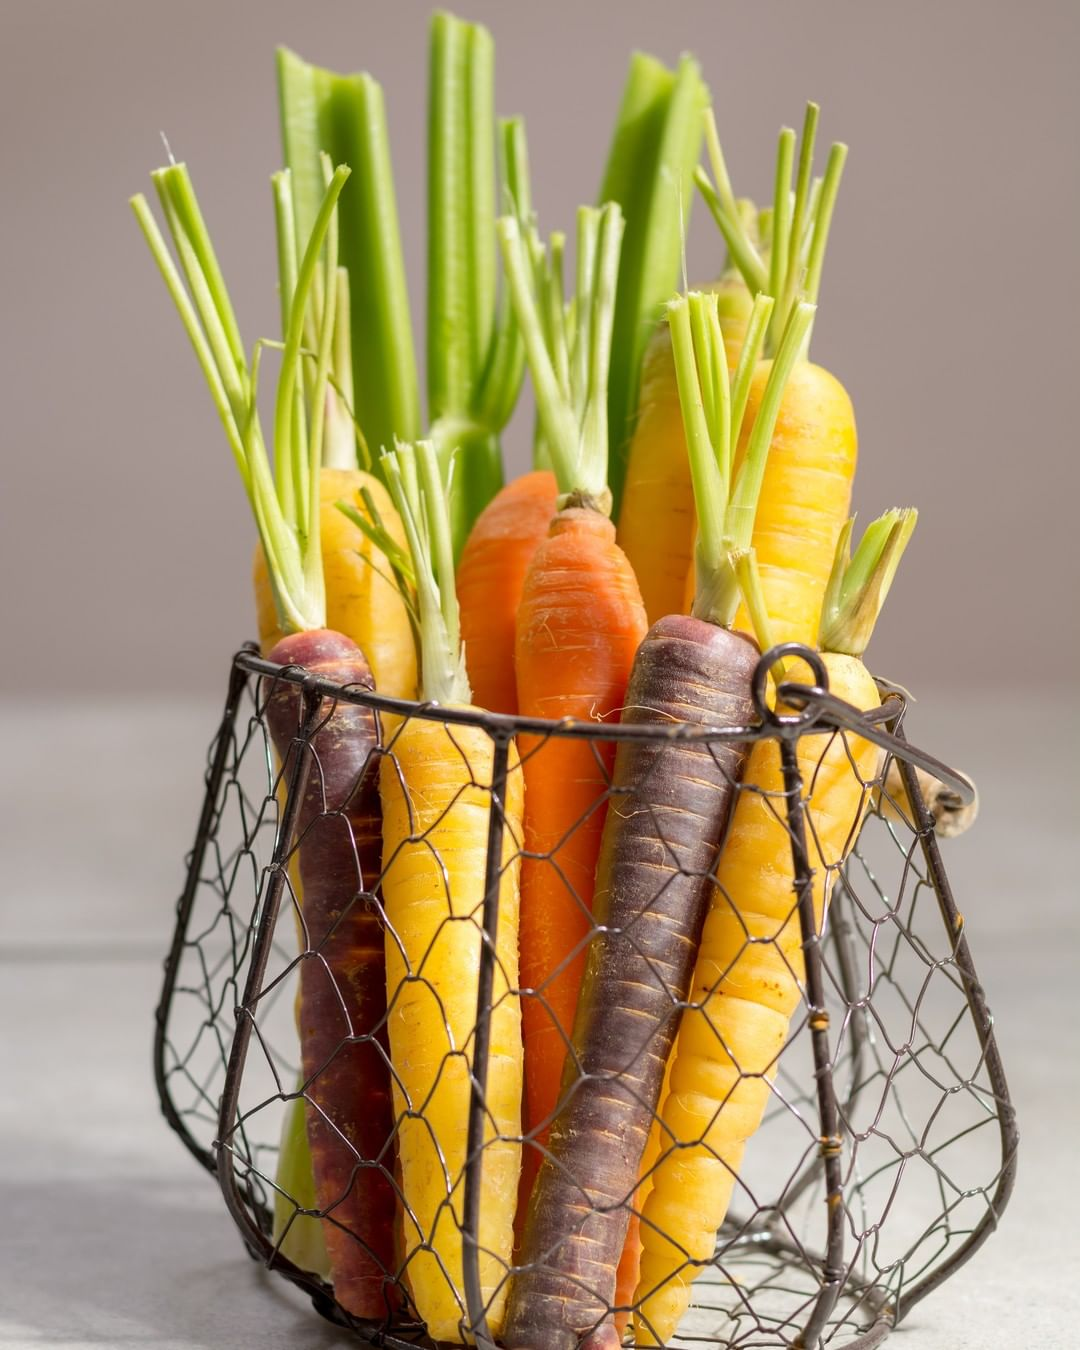 Foodhall,  FoodhallLoves:, FoodhallIndia, ForTheLoveofVegetables, ColouredCarrots, WhiteCarrots, PurpleCarrots, RedCarrots, Carrots, FreshIn